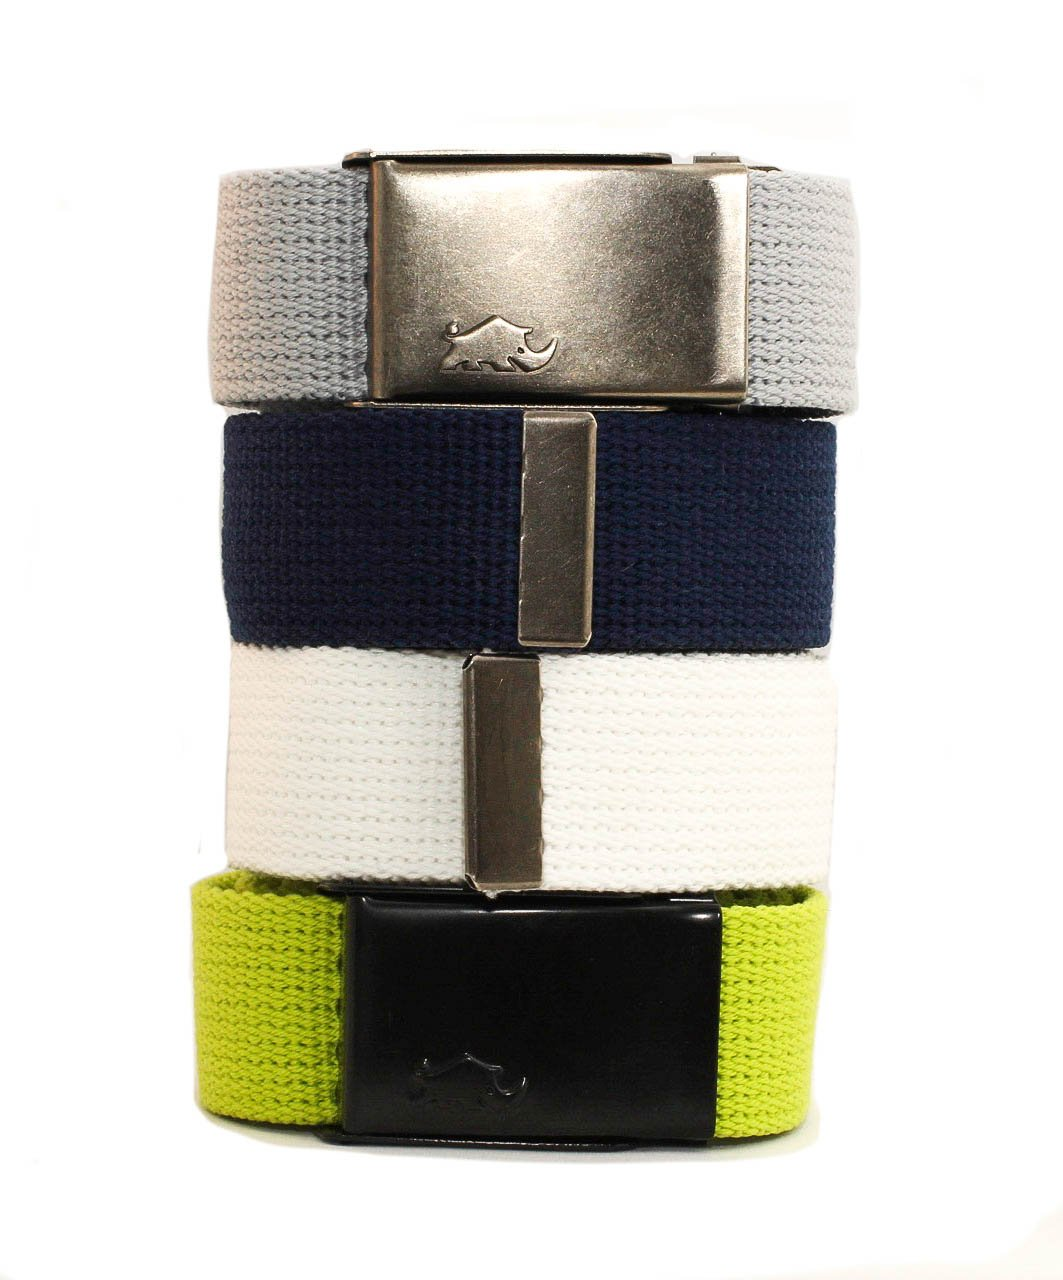 Less is more golf 4x2 Web Pack Belts for woman. 4 belts and 2 buckles. 100% polyester (much better than cotton)